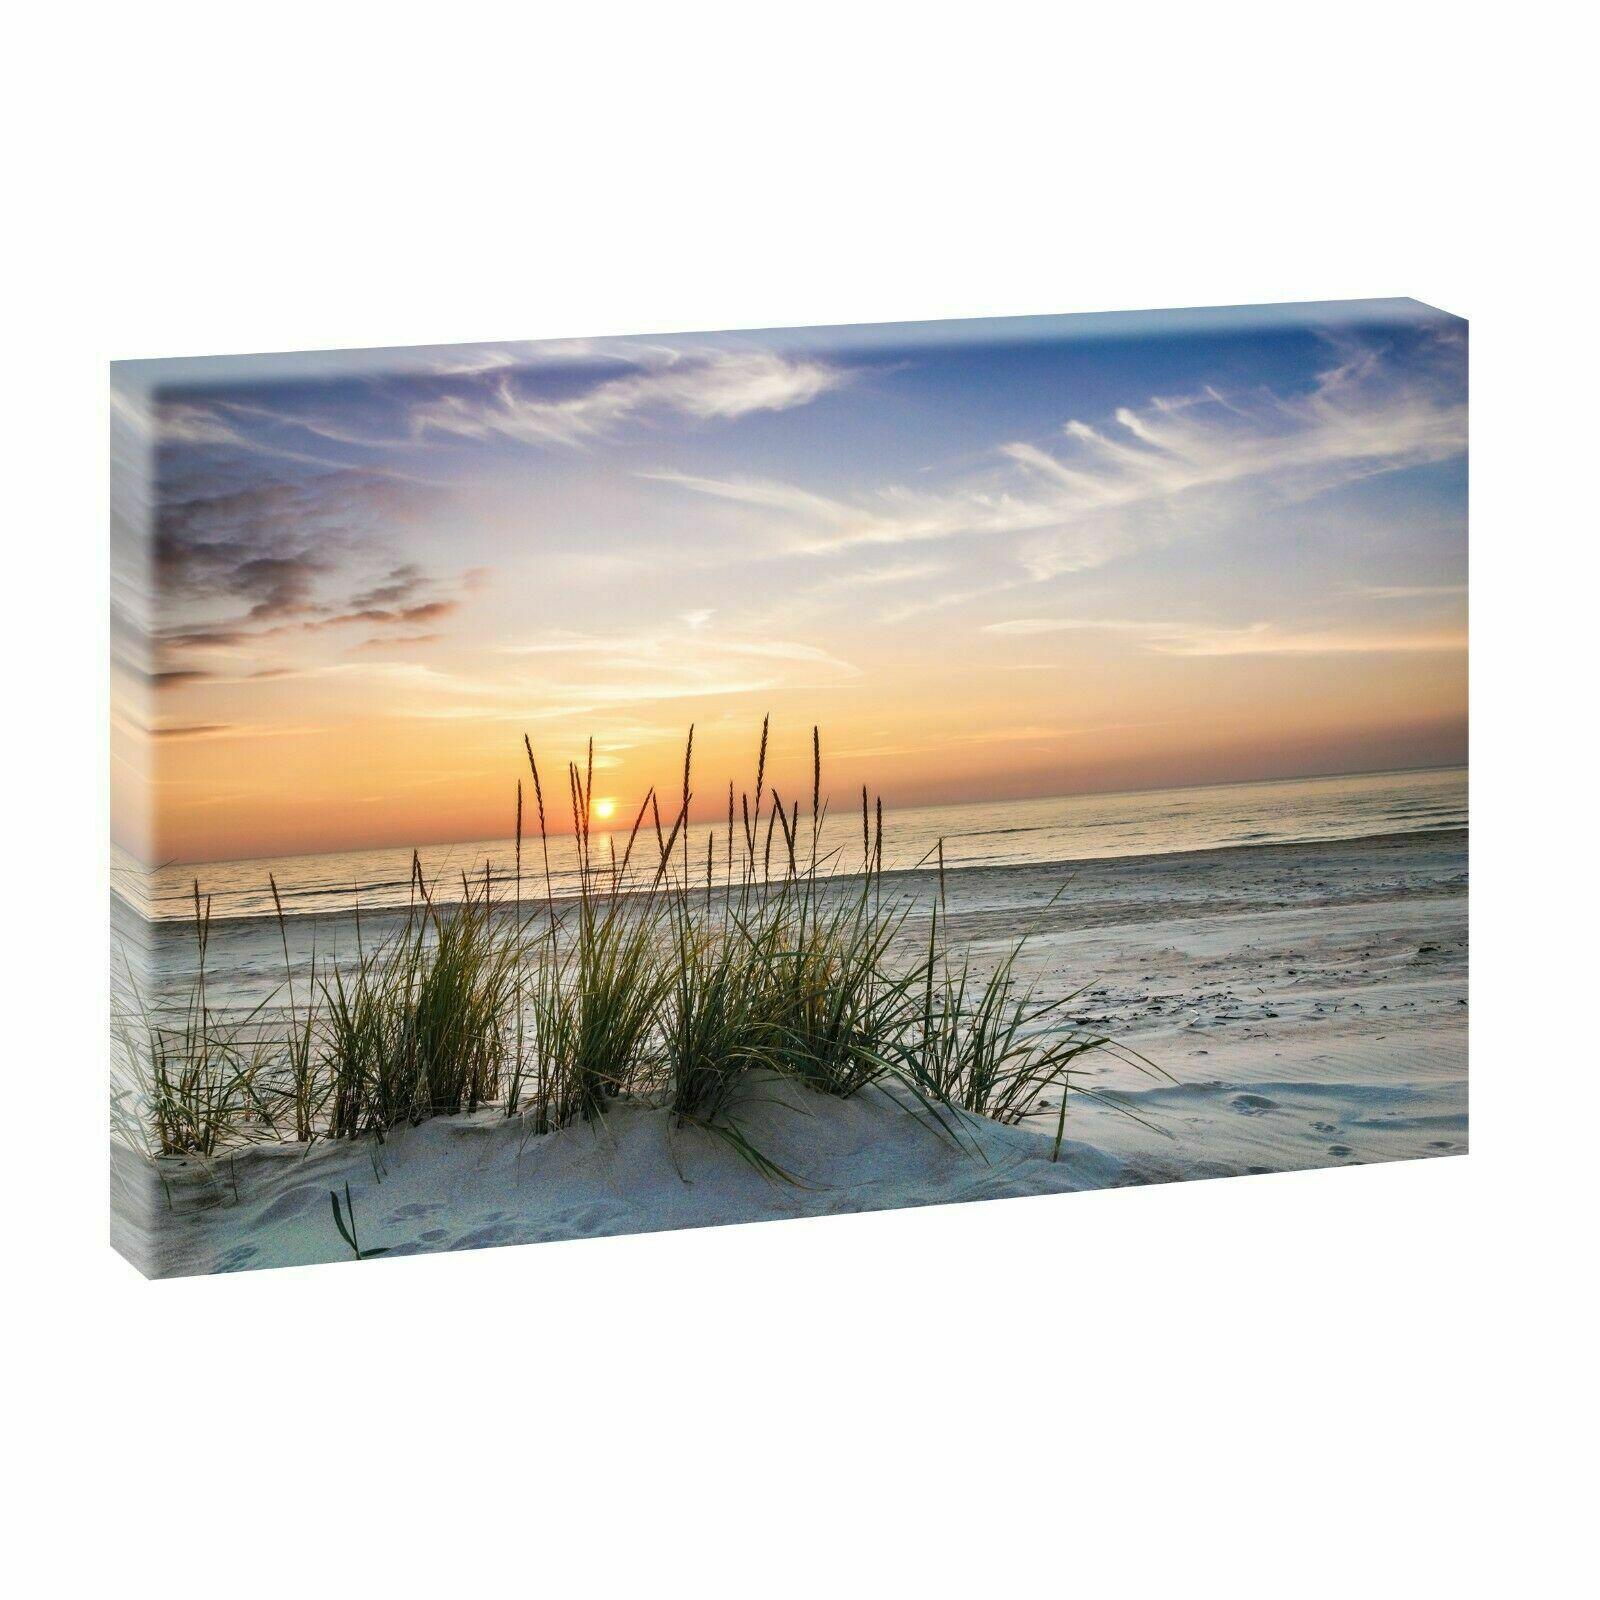 bilder auf leinwand keilrahmen poster wandbild strand meer xxl 100 cm 65 cm 728 eur 29 90. Black Bedroom Furniture Sets. Home Design Ideas